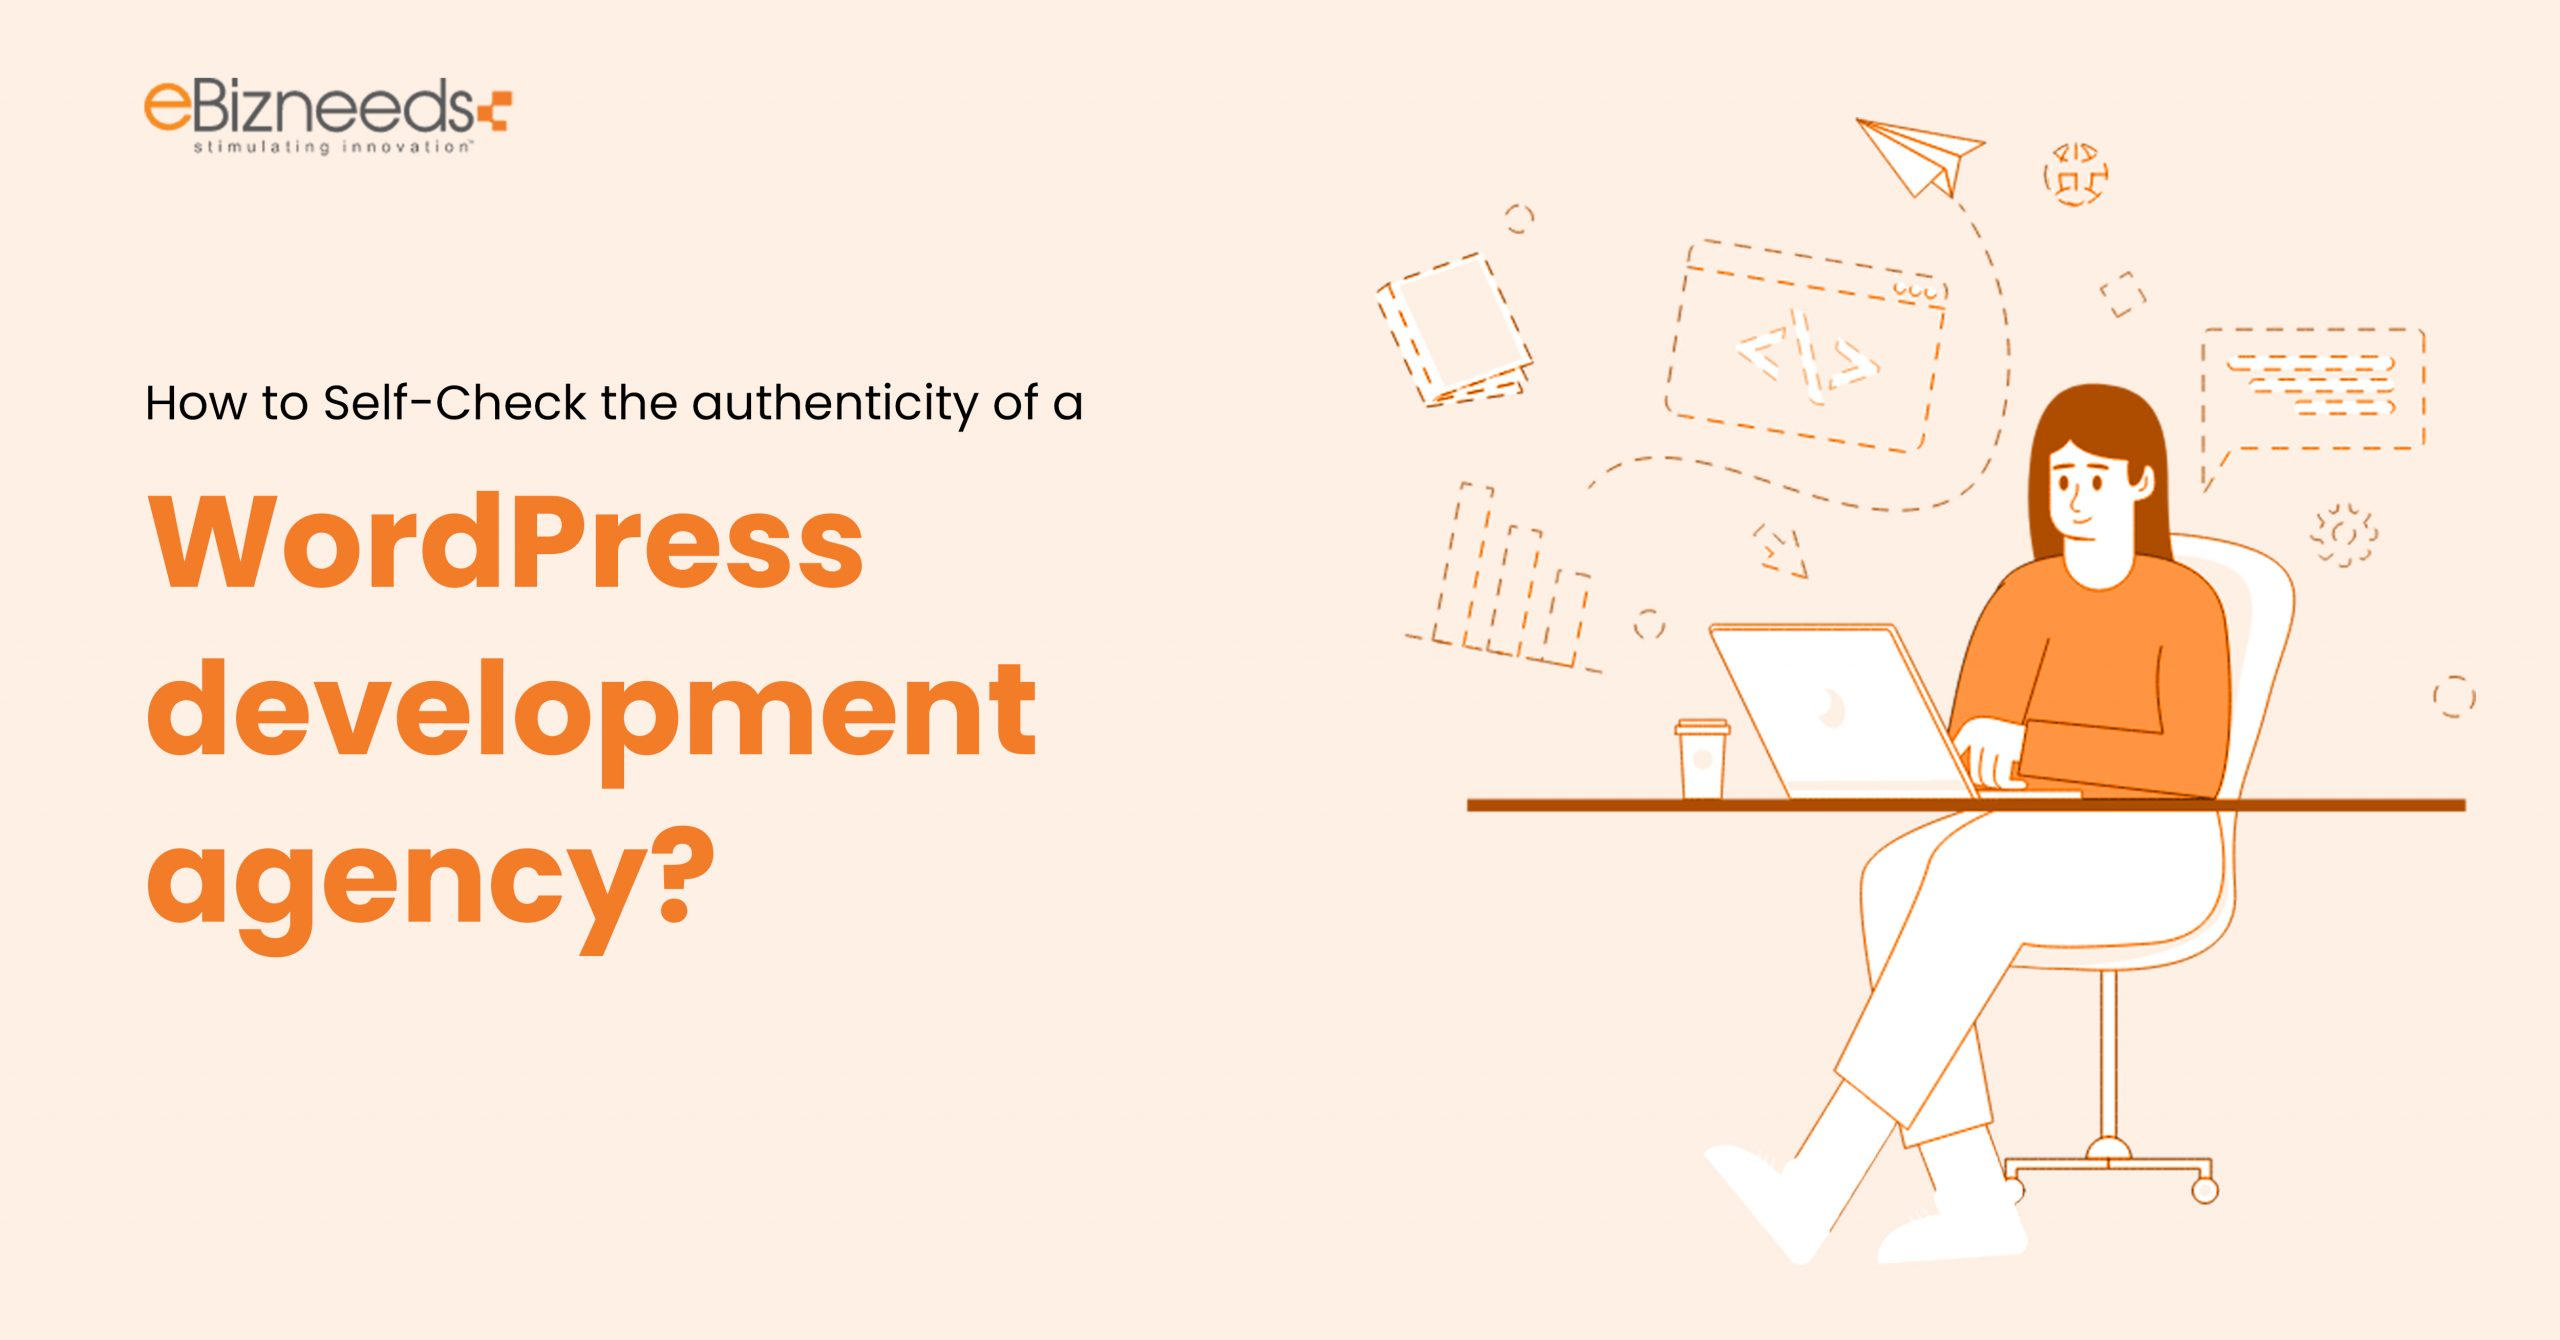 How to Self-Check the Authenticity of a WordPress Development Agency